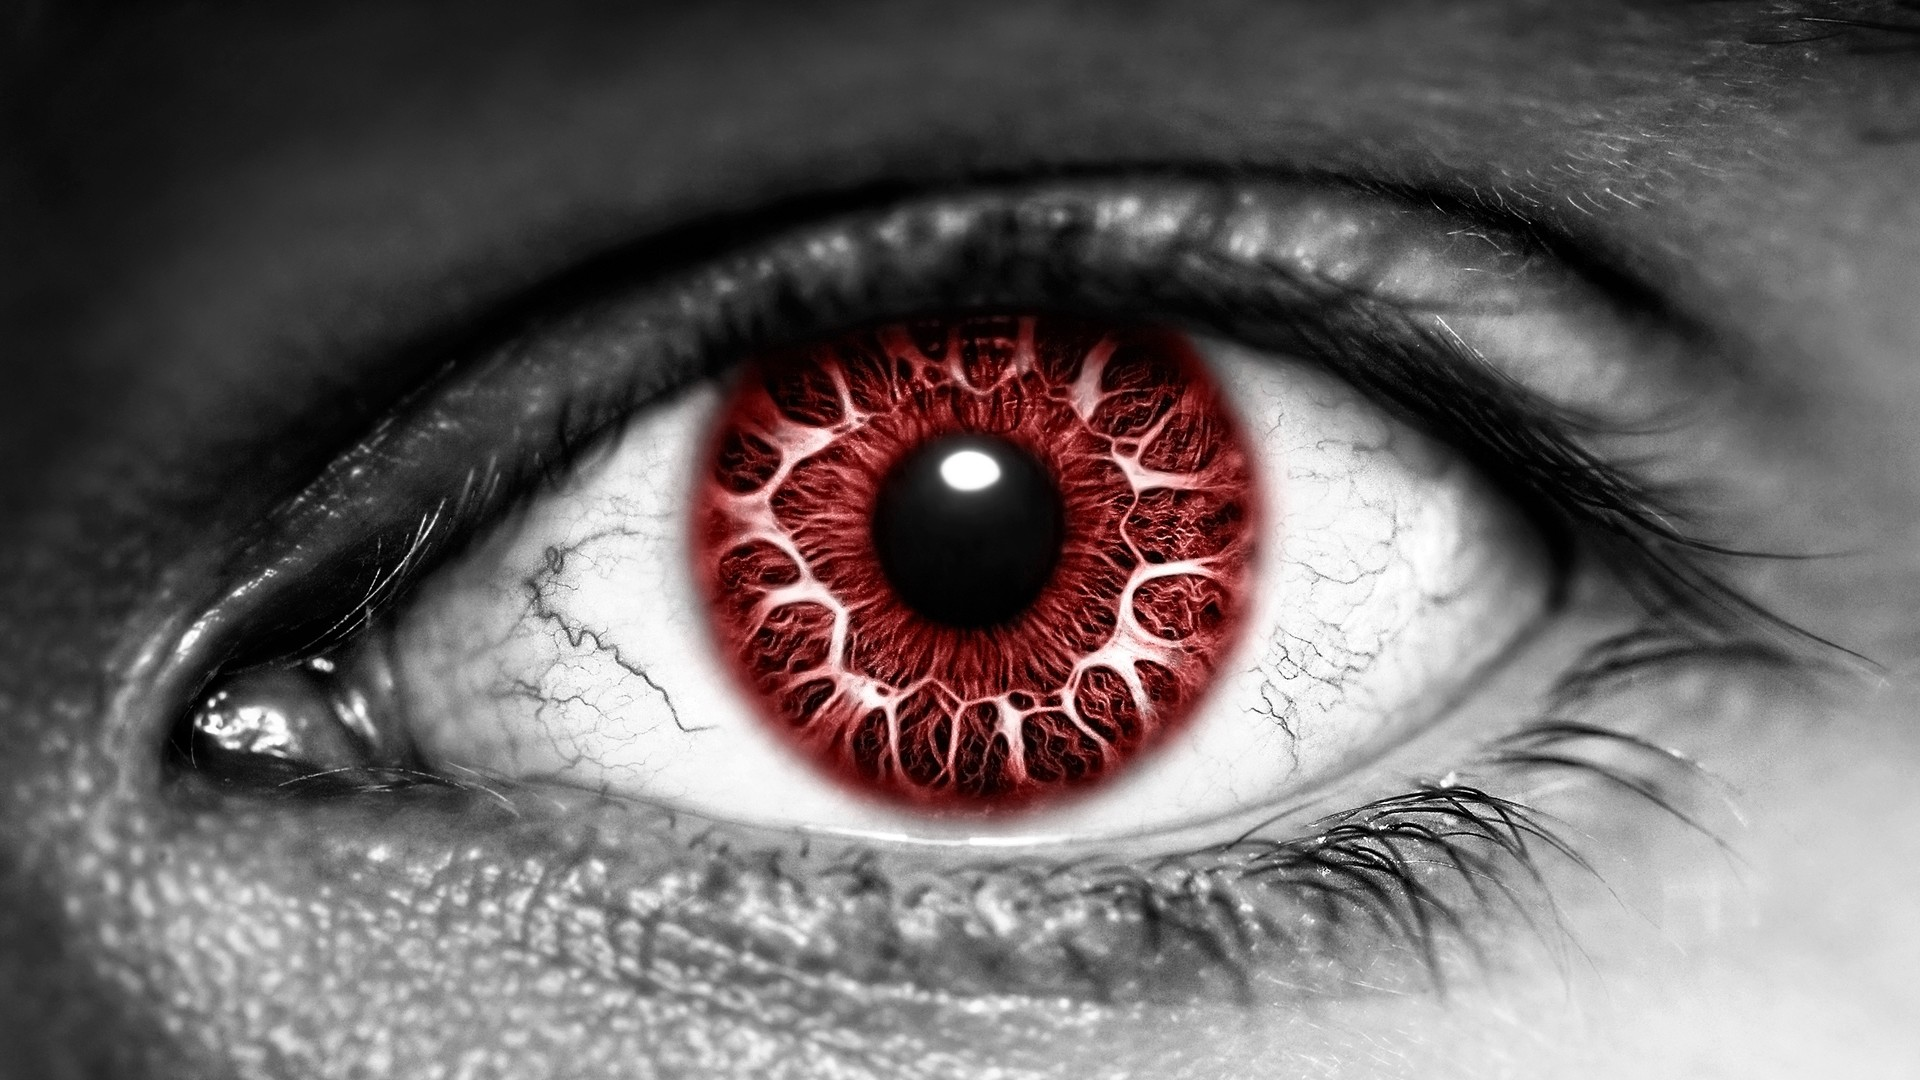 1920x1080 Blood Red Eye wallpaper from Eyes wallpapers